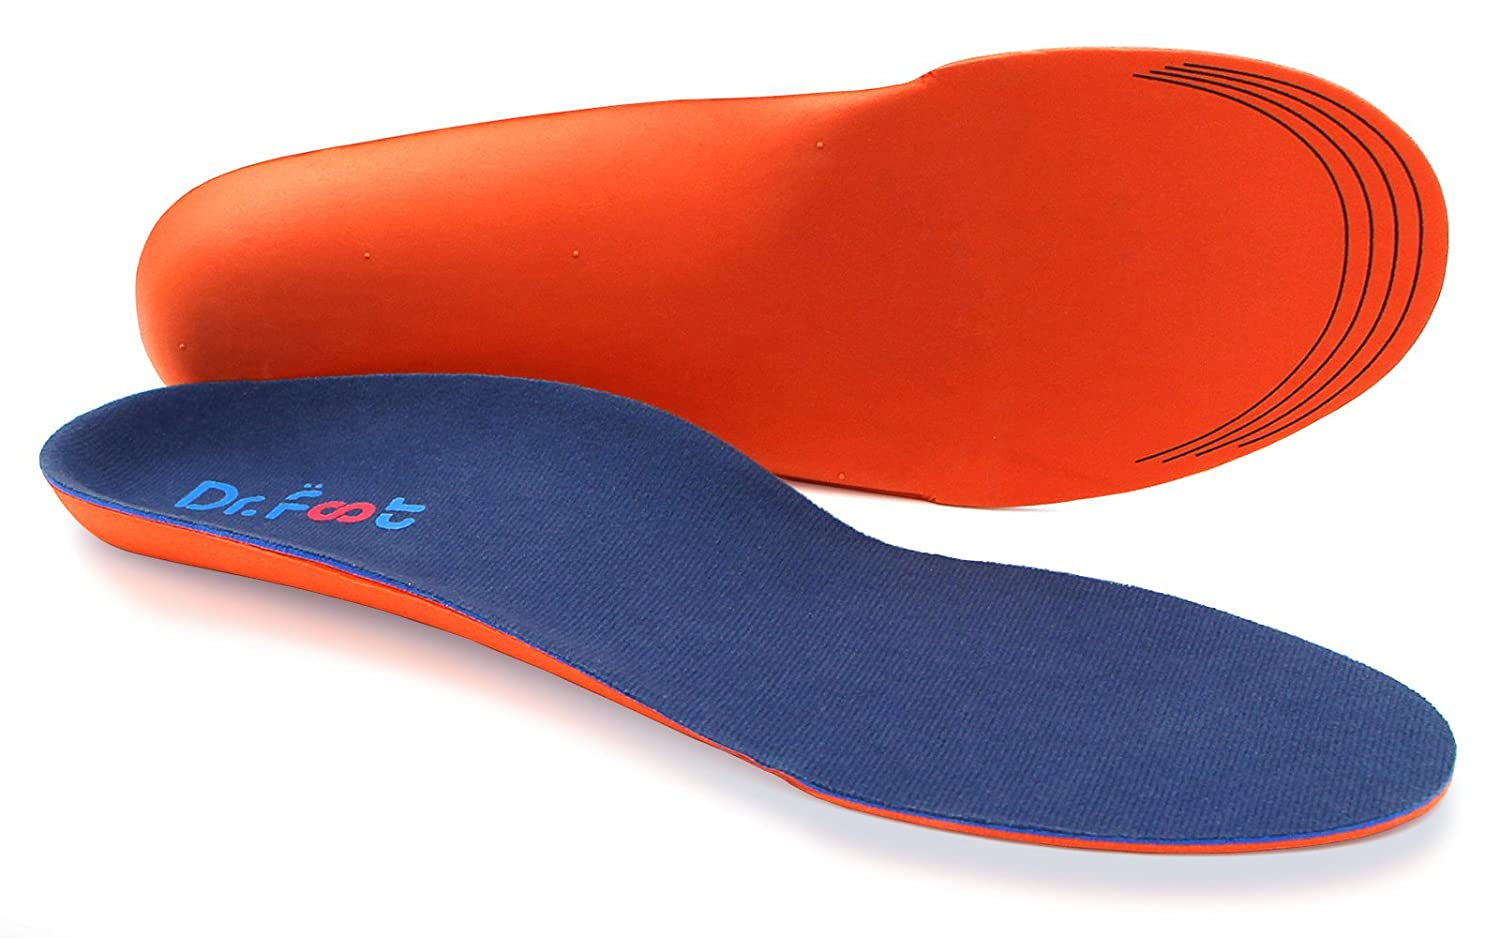 1f936a30616 Dr. Foot's Orthotics Insoles for Flat Feet - Arch Support Shoe Inserts for  Plantar Fasciitis, Foot & Heel Pain,...